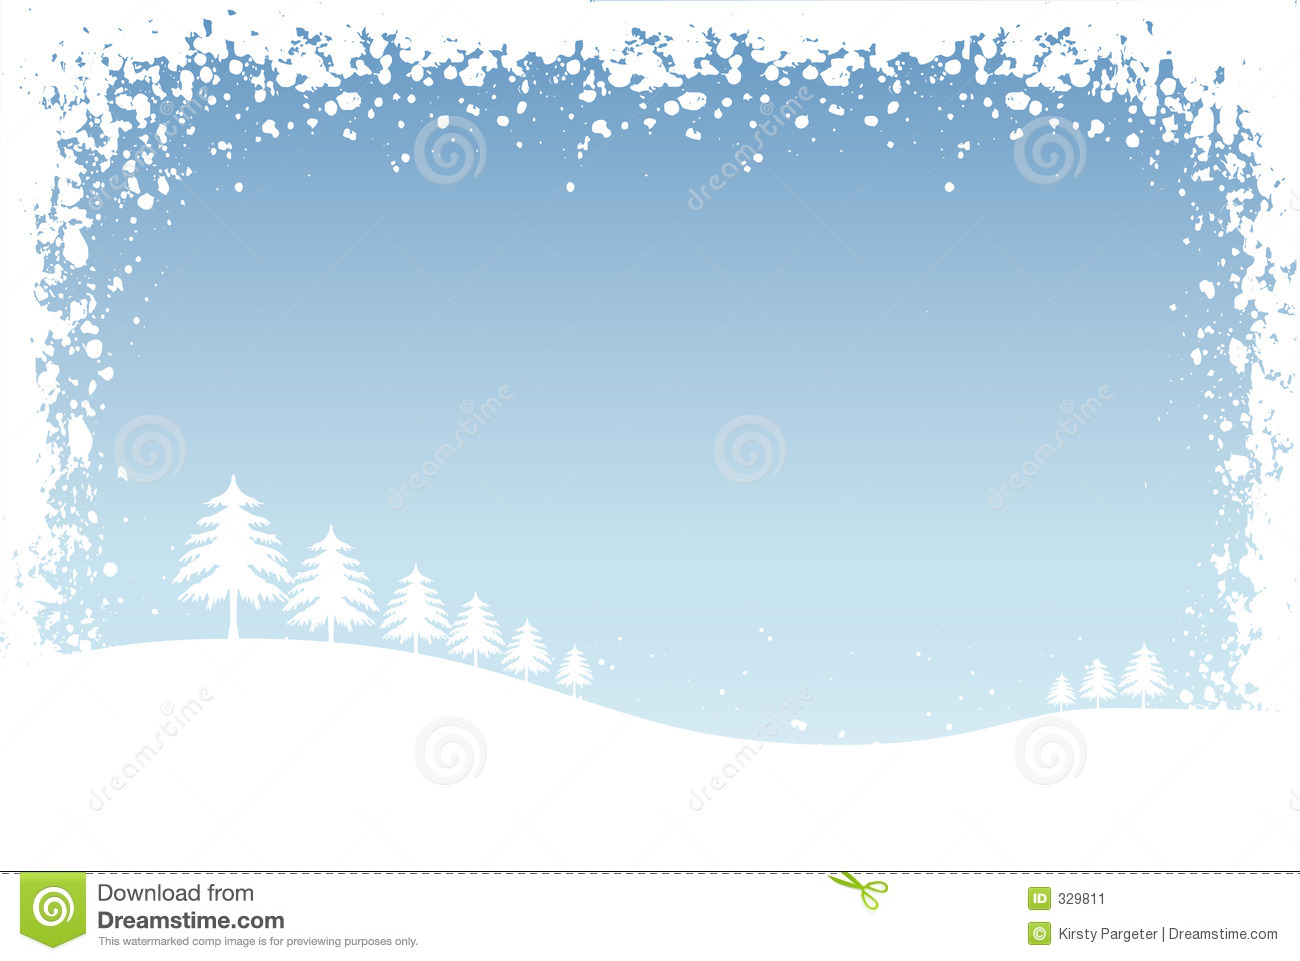 Winter Wallpaper Merry Christmas Winter Scenes Christmas Winter 1300x961